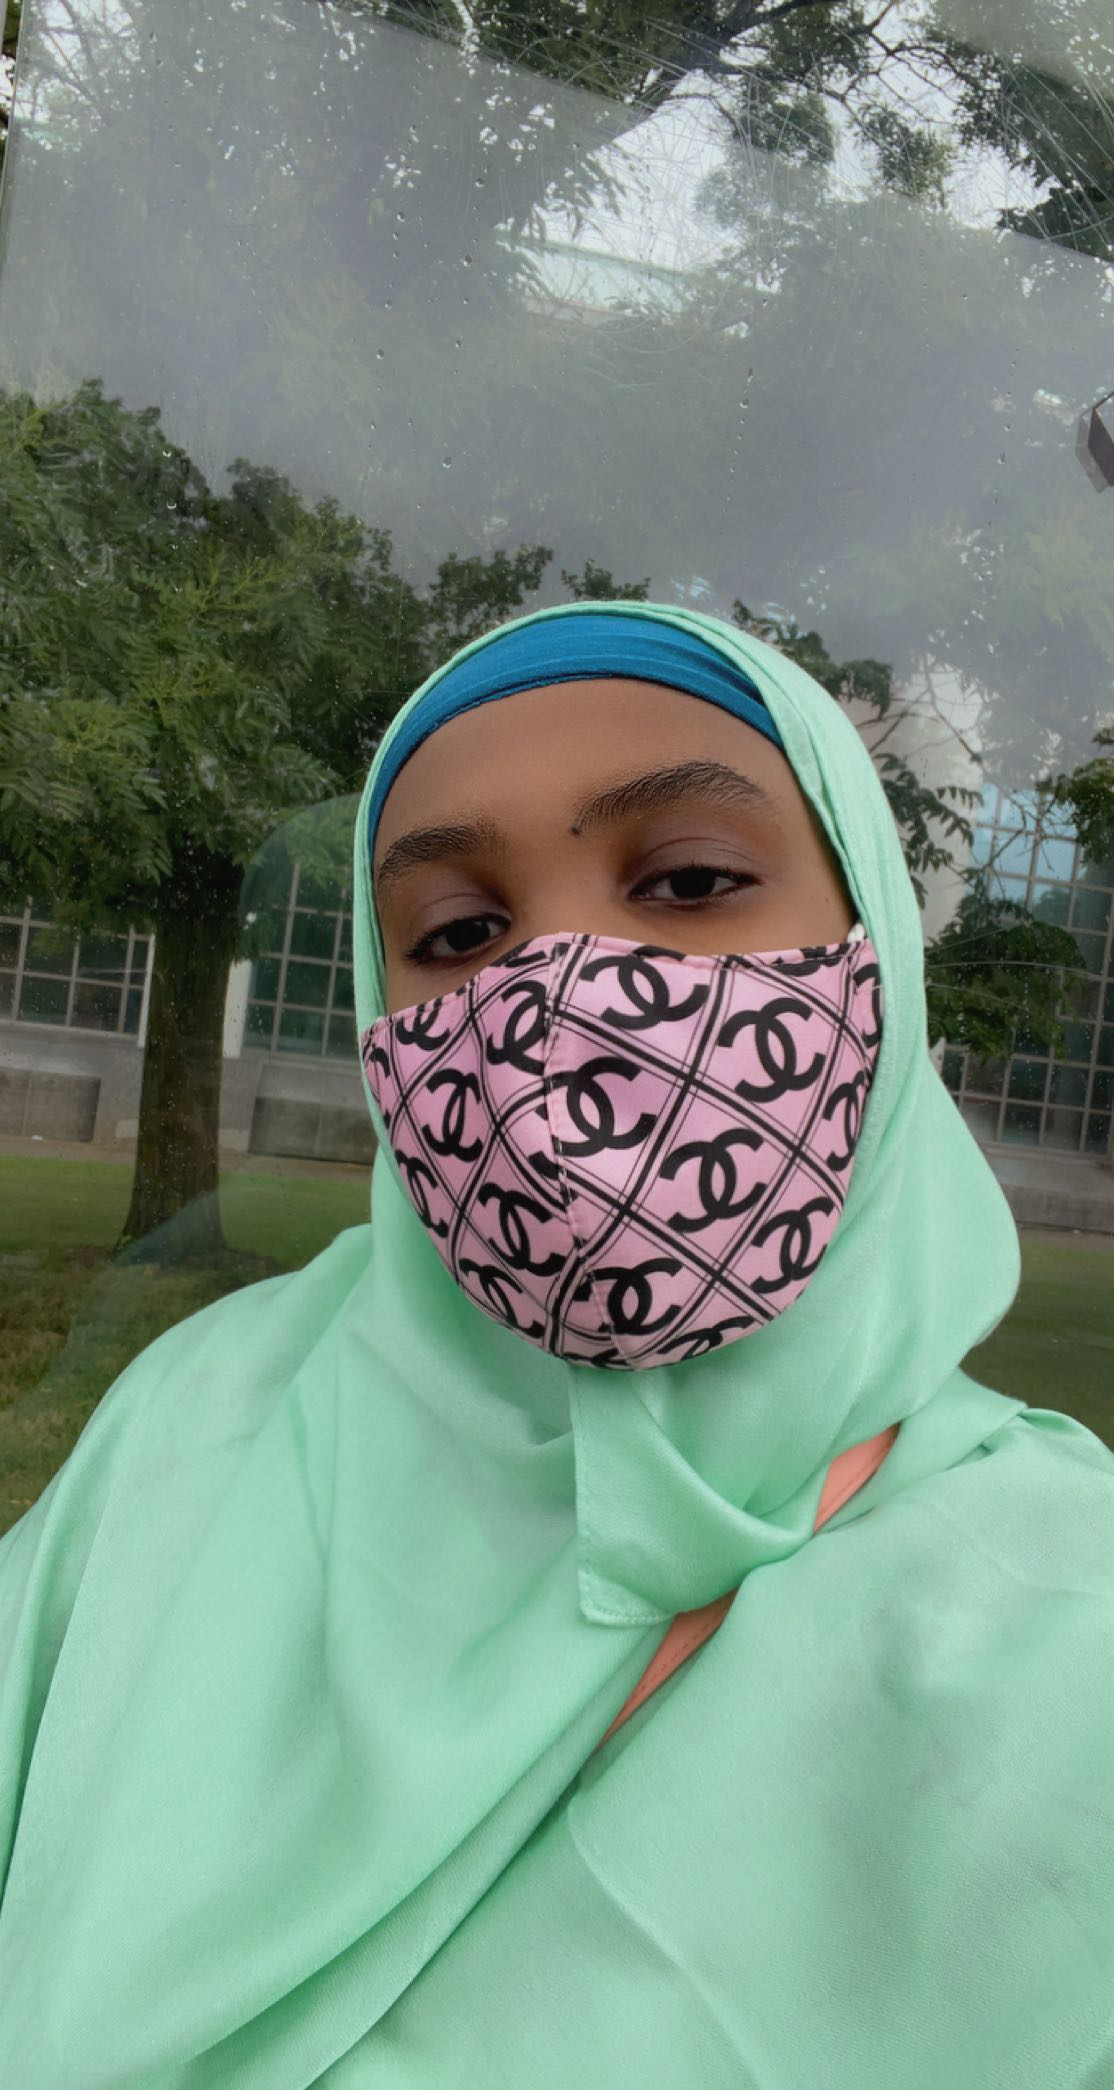 Selfie of the author in a lime green scarf, blue headband, and pink face mask. Photo taken by the author.